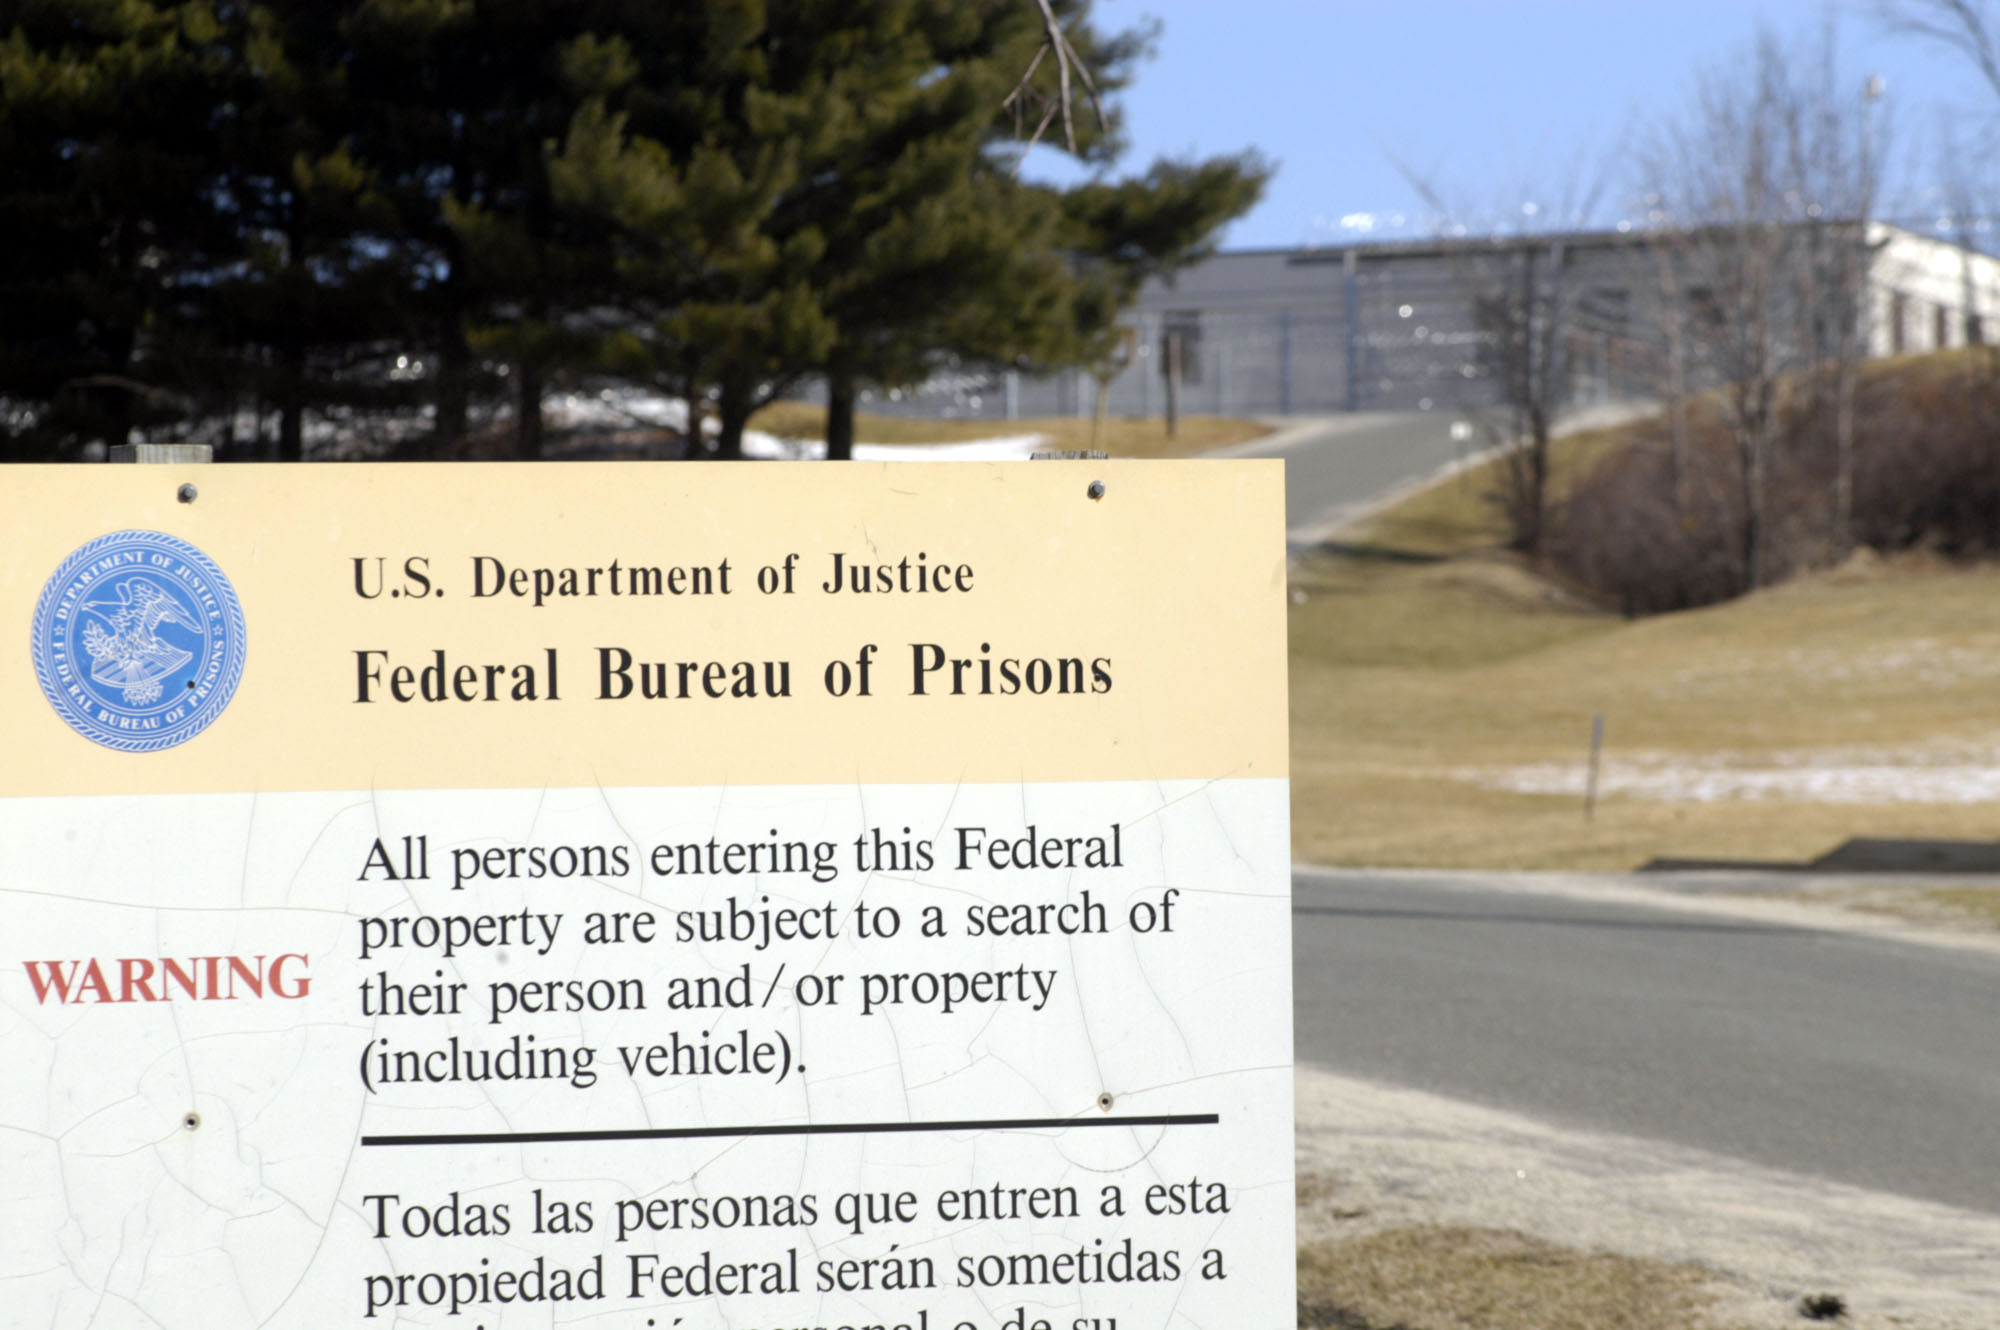 UNITED STATES - MARCH 11:  The federal prison at Danbury, Connecticut is pictured on Thursday, March 11, 2004. Martha Stewart, convicted of obstructing a U.S. investigation of stock she sold, may serve her 10-to-16 month sentence at the facility, about 27 miles form her home in Westport, Connecticut.  (Photo by Chris Ware/Bloomberg via Getty Images)